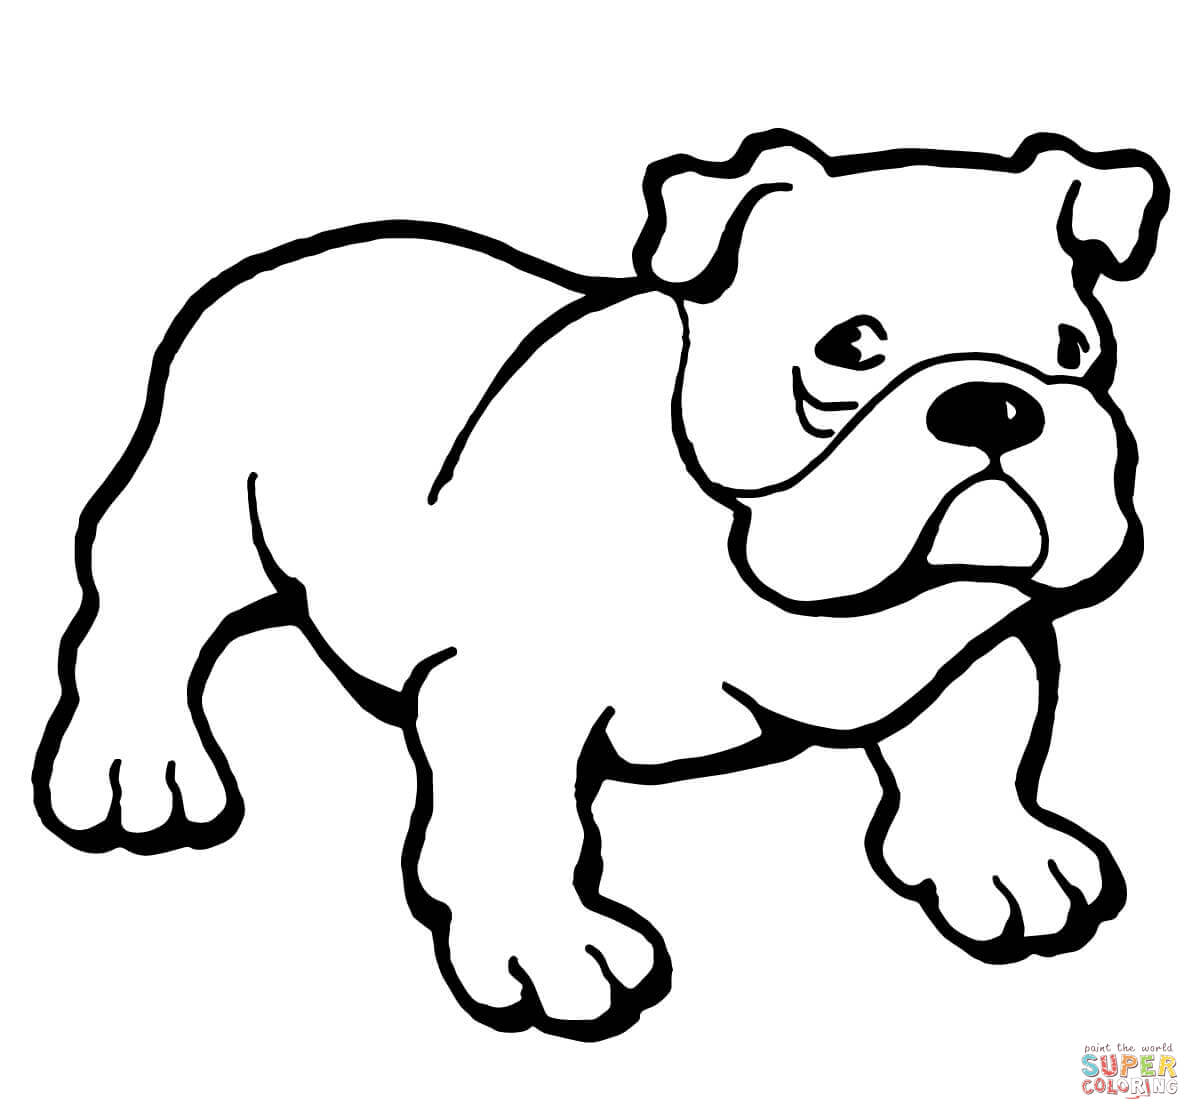 free printable bulldog coloring page bulldog coloring pages to download and print for free coloring bulldog printable page free